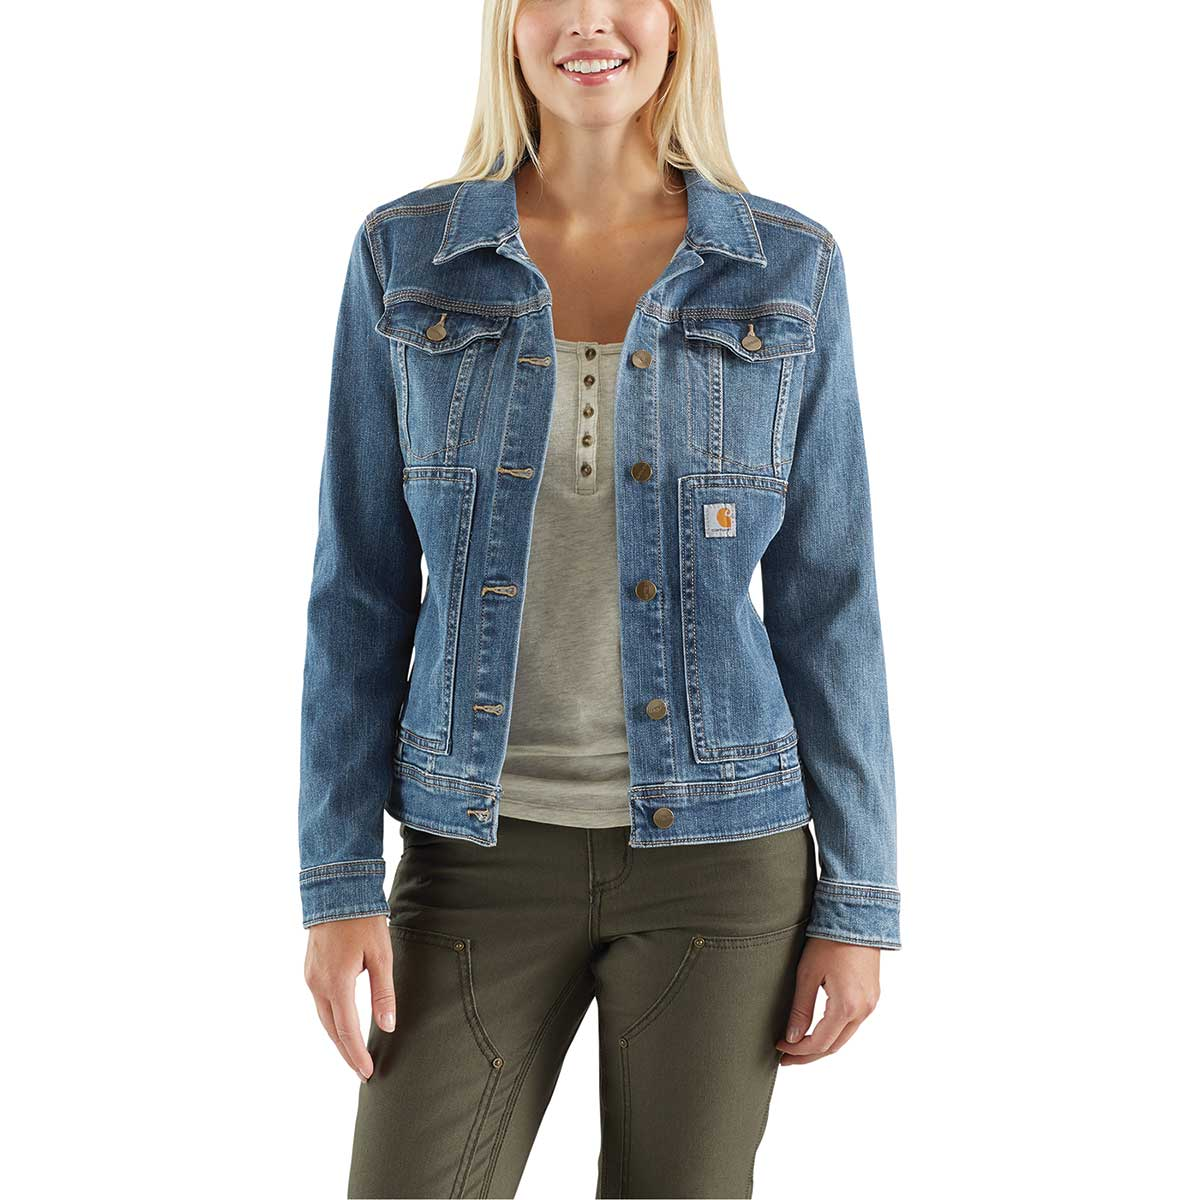 Carhartt Women's Rugged Flex Benson Denim Jacket